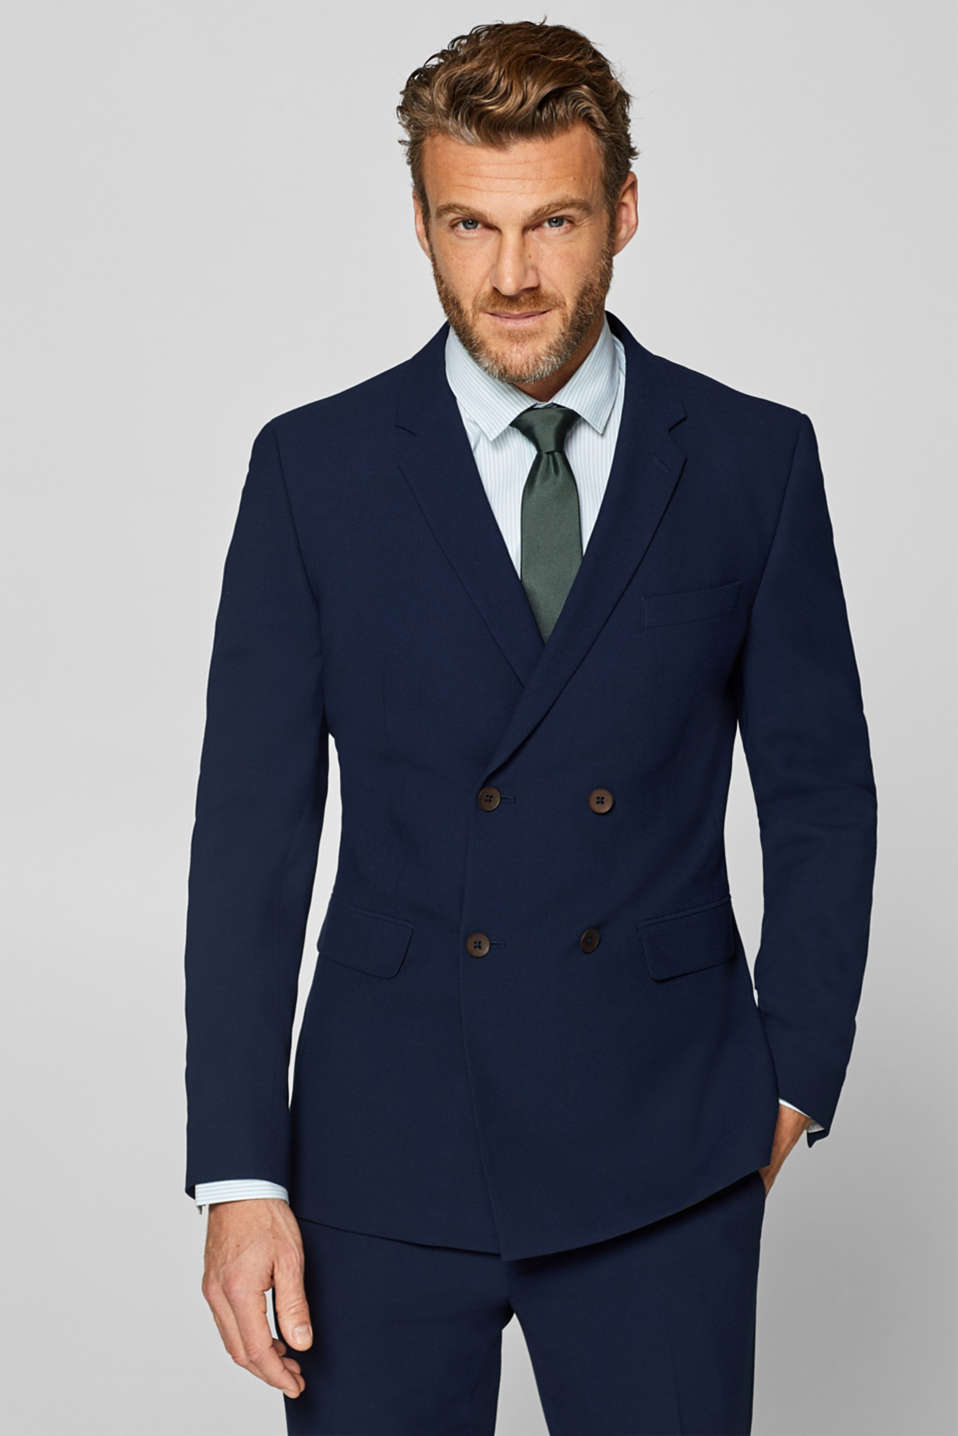 Esprit - Mix + Match ACTIVE SUIT : veston à boutonnage croisé